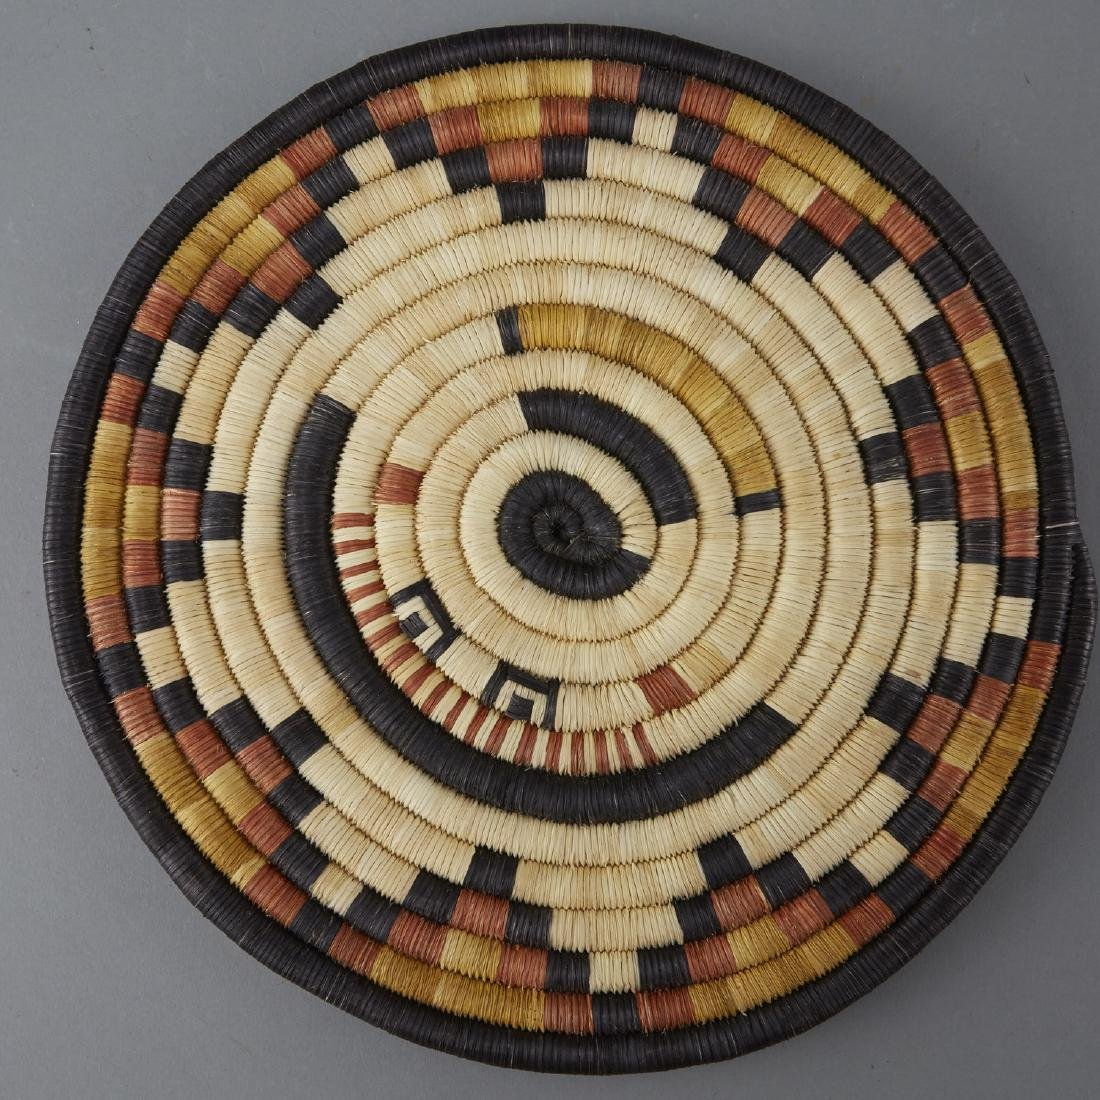 Group of 8 Native American Polychrome Woven Trays - 2